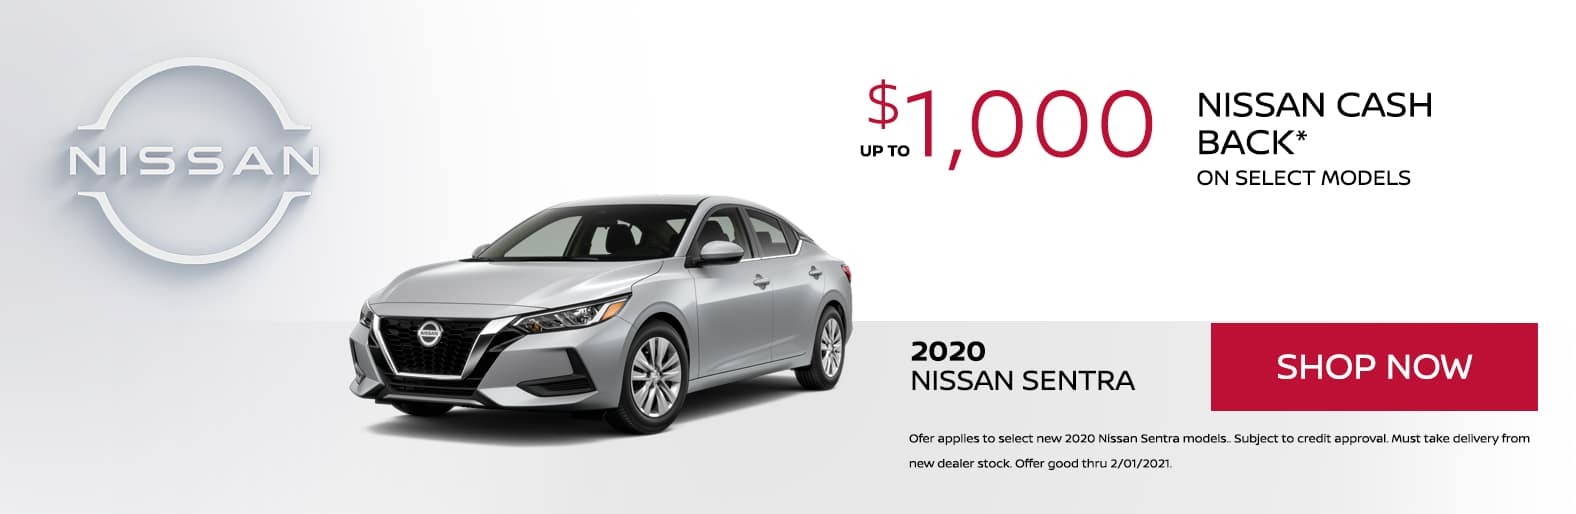 up to $1,000 Nissan Cash Back on MY20 Nissan Sentra